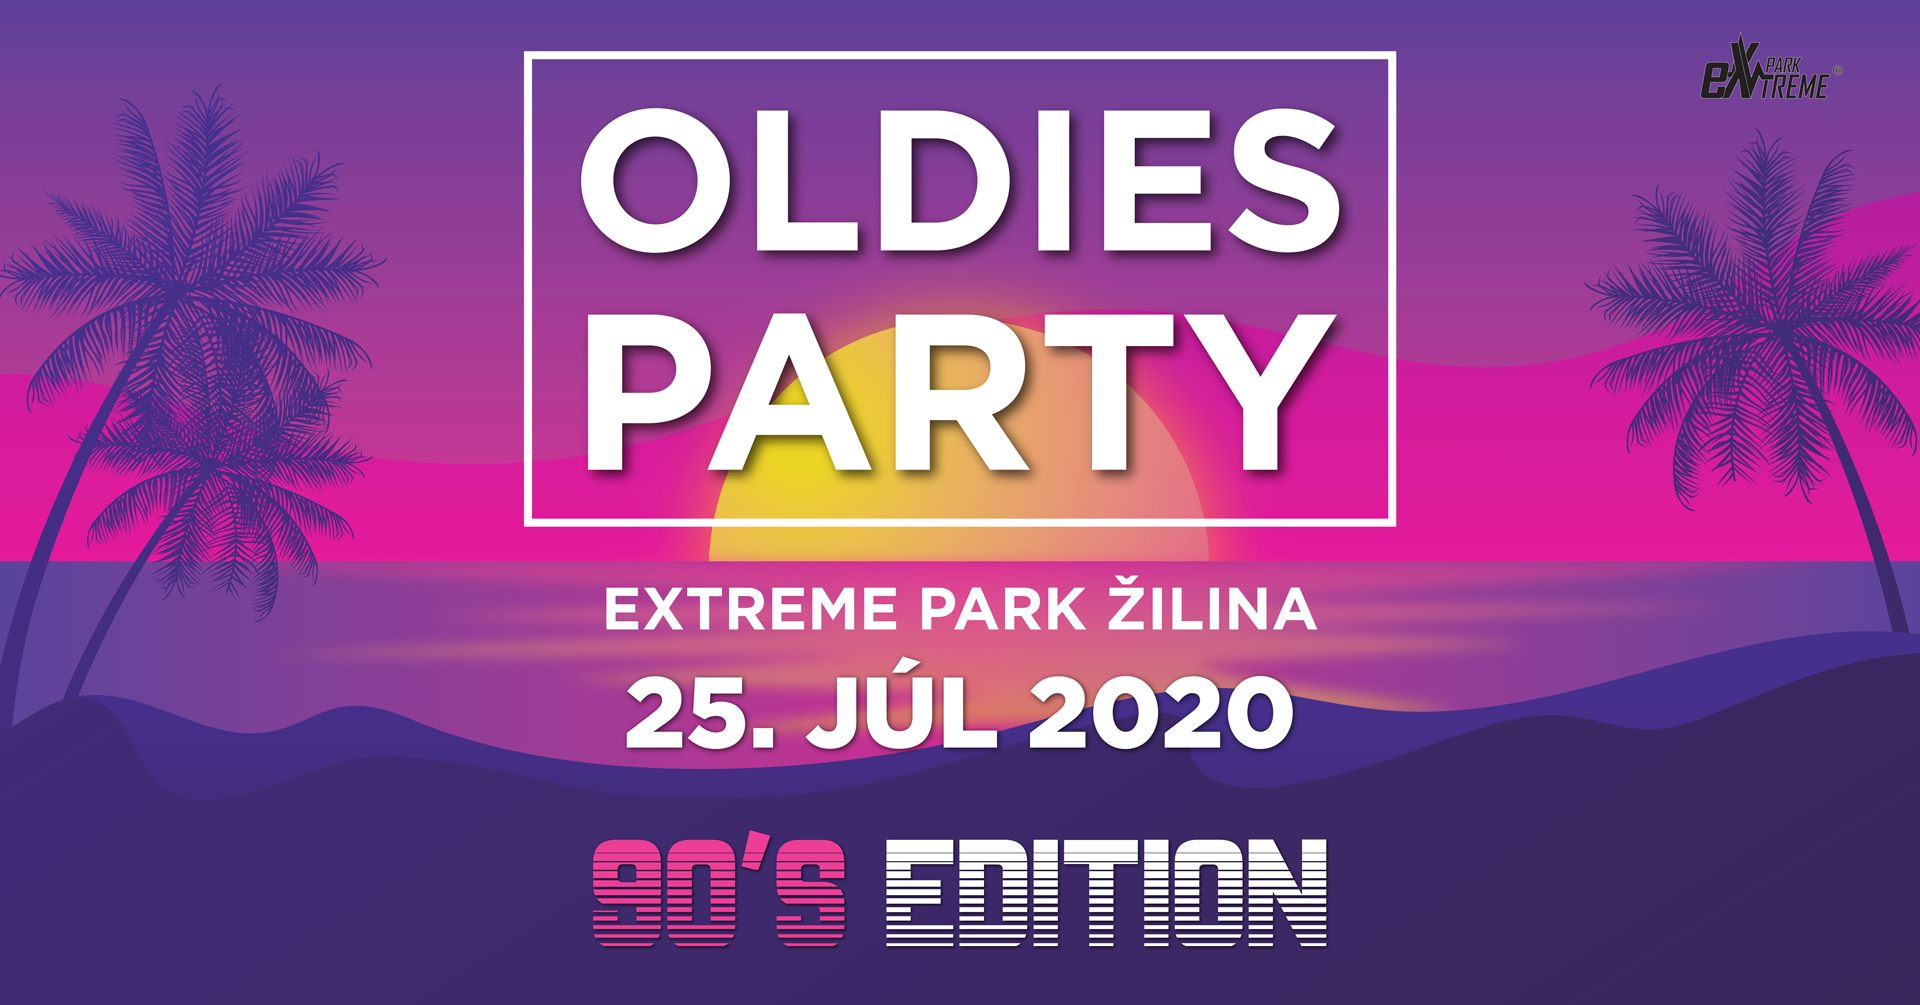 Oldies party eXtreme park Žilina